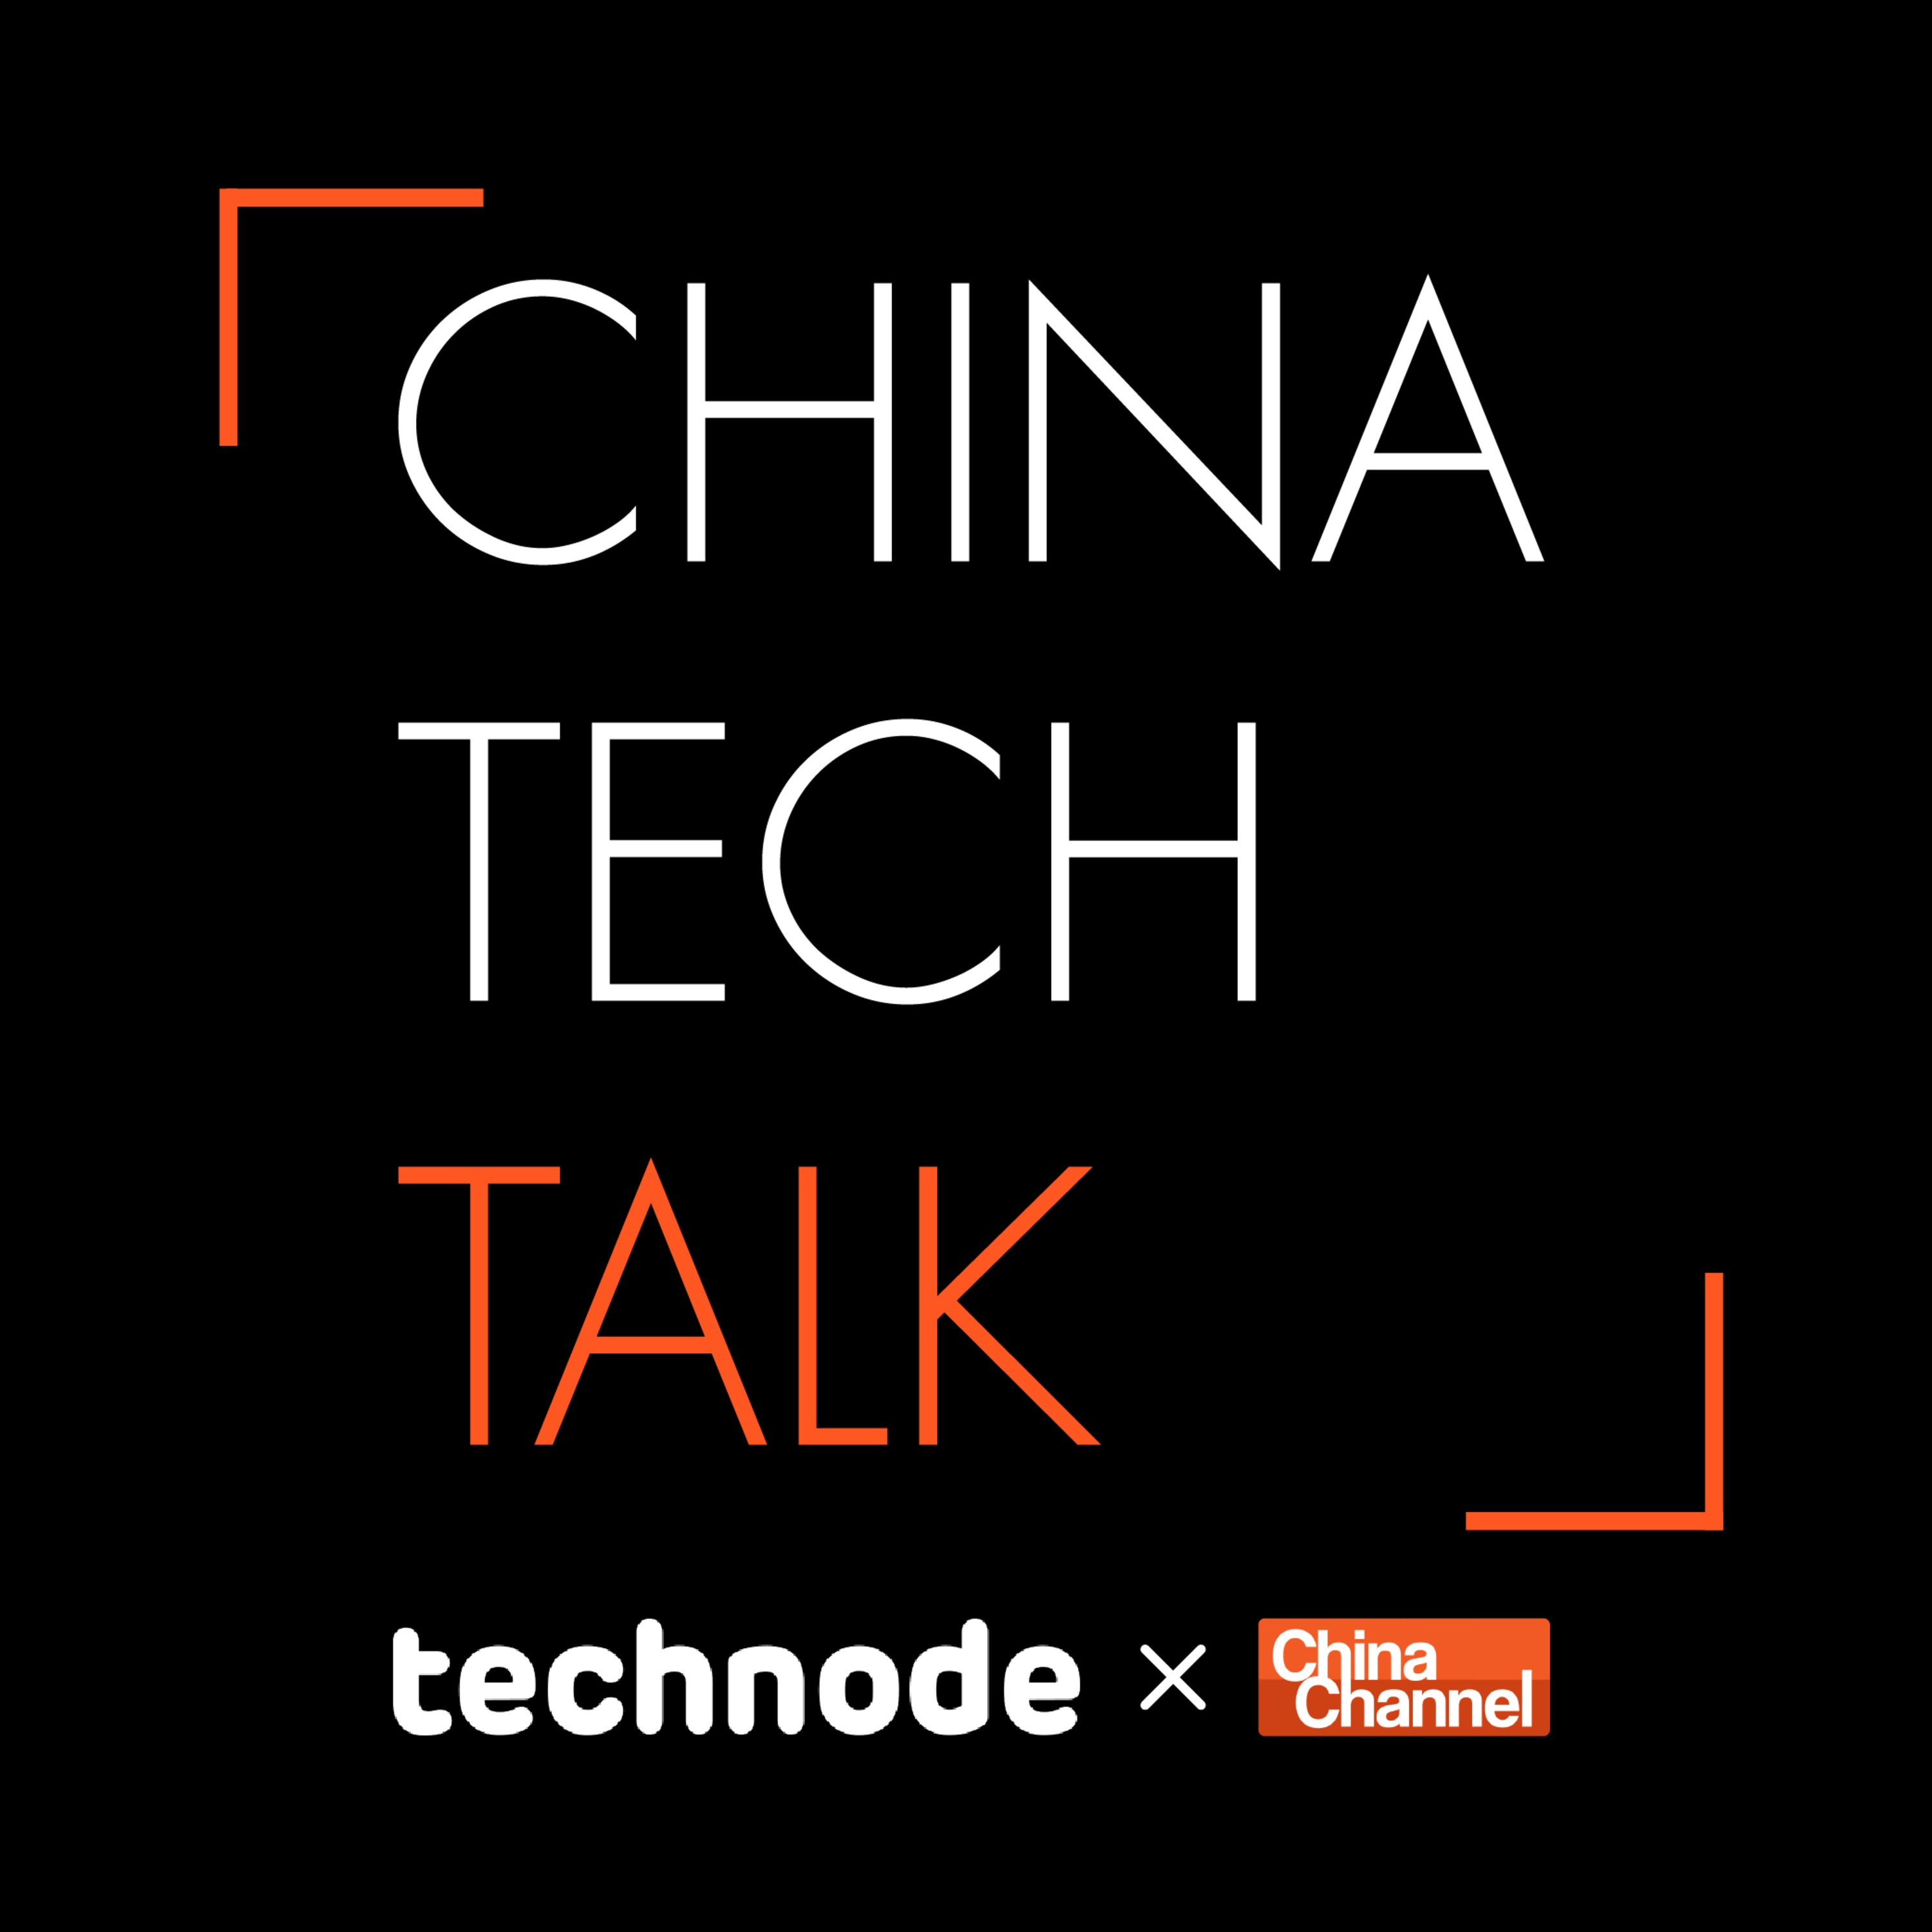 82: Tech conferences in China